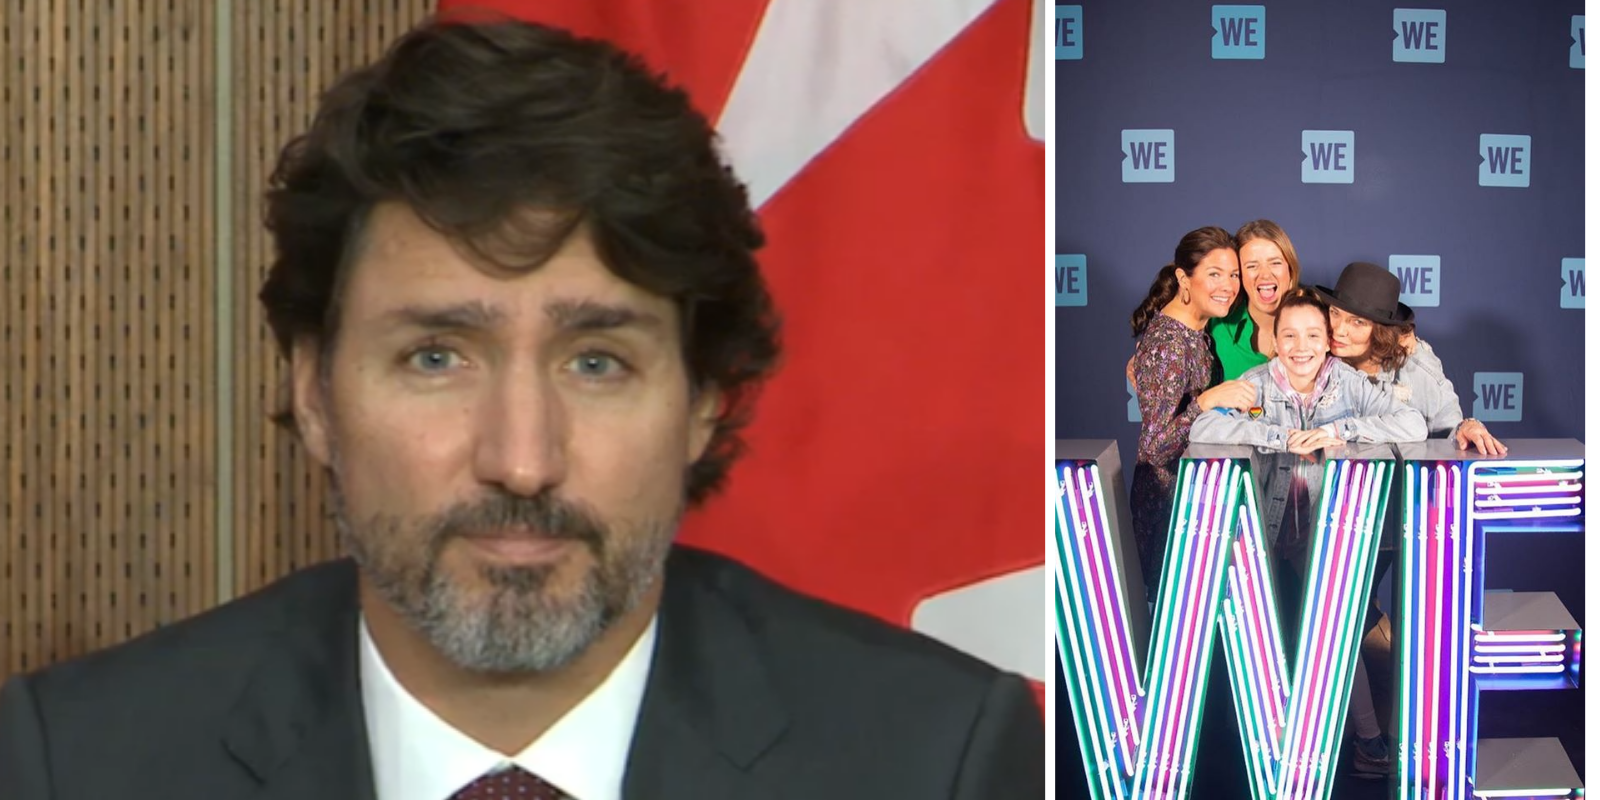 BREAKING: Trudeau says govt has been 'open and transparent' in WE scandal investigation